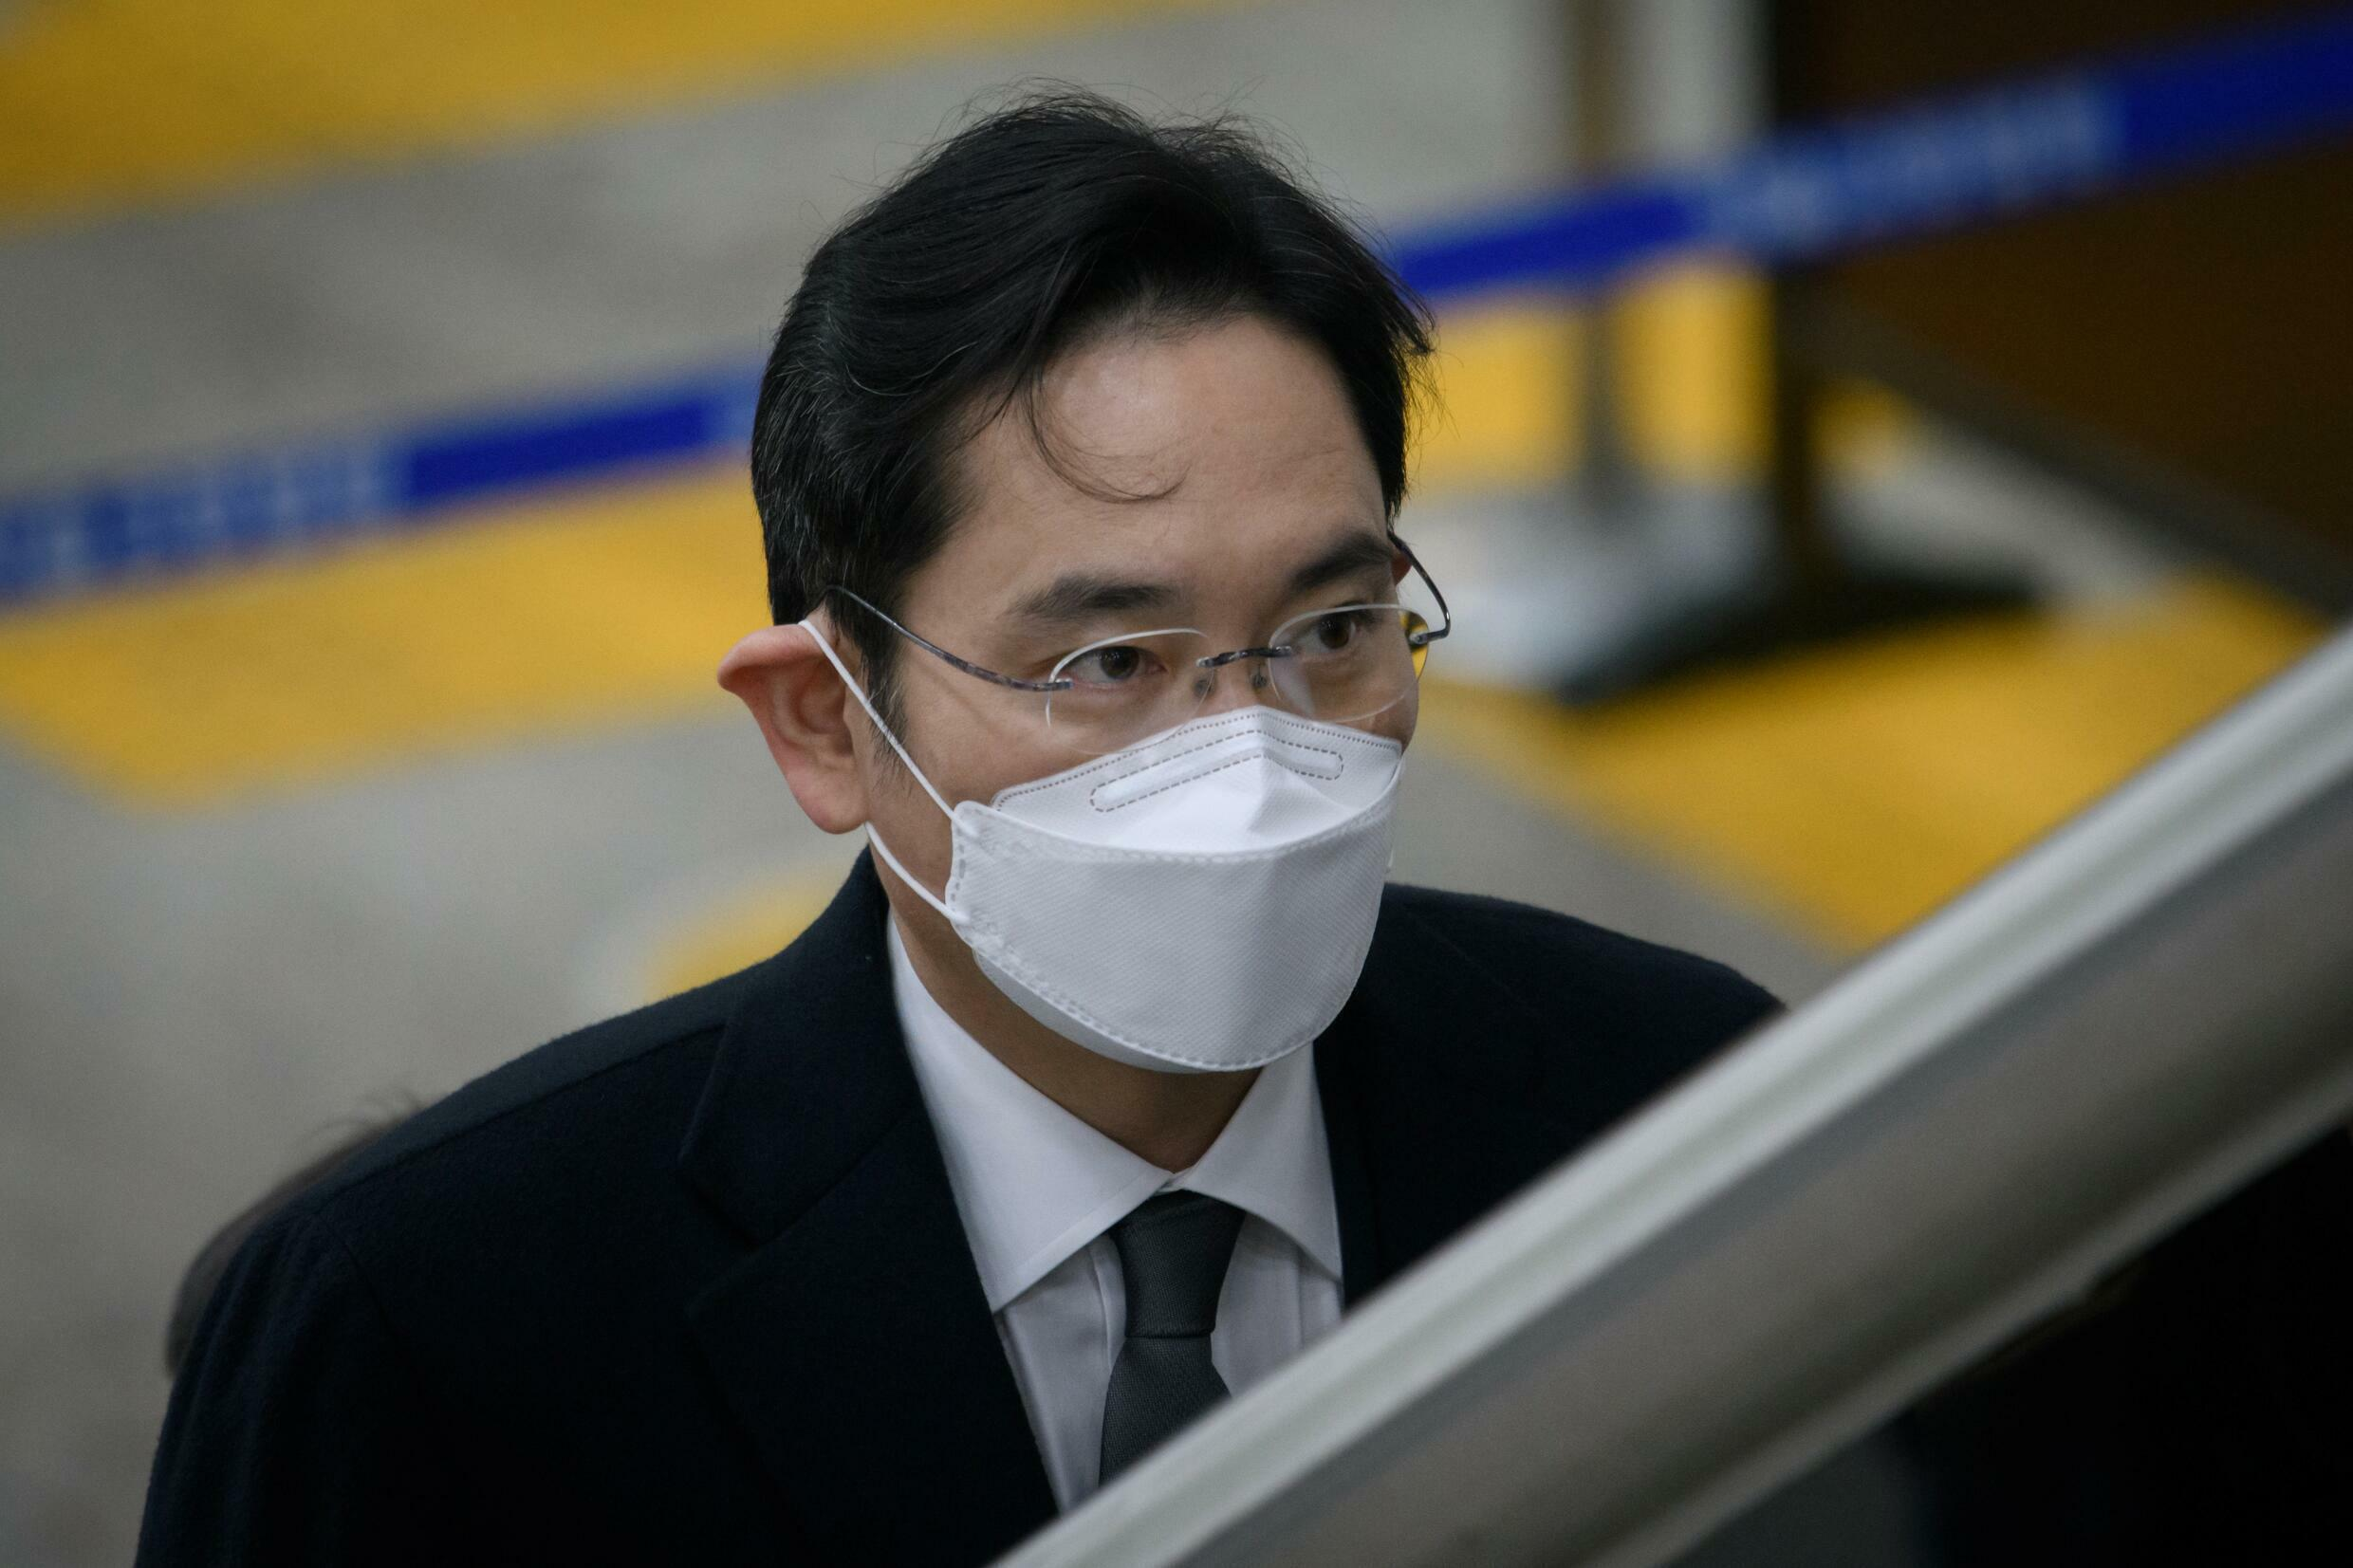 De facto Samsung group leader Lee Jae-yong will be released early on parole, South Korea's justice ministry has said